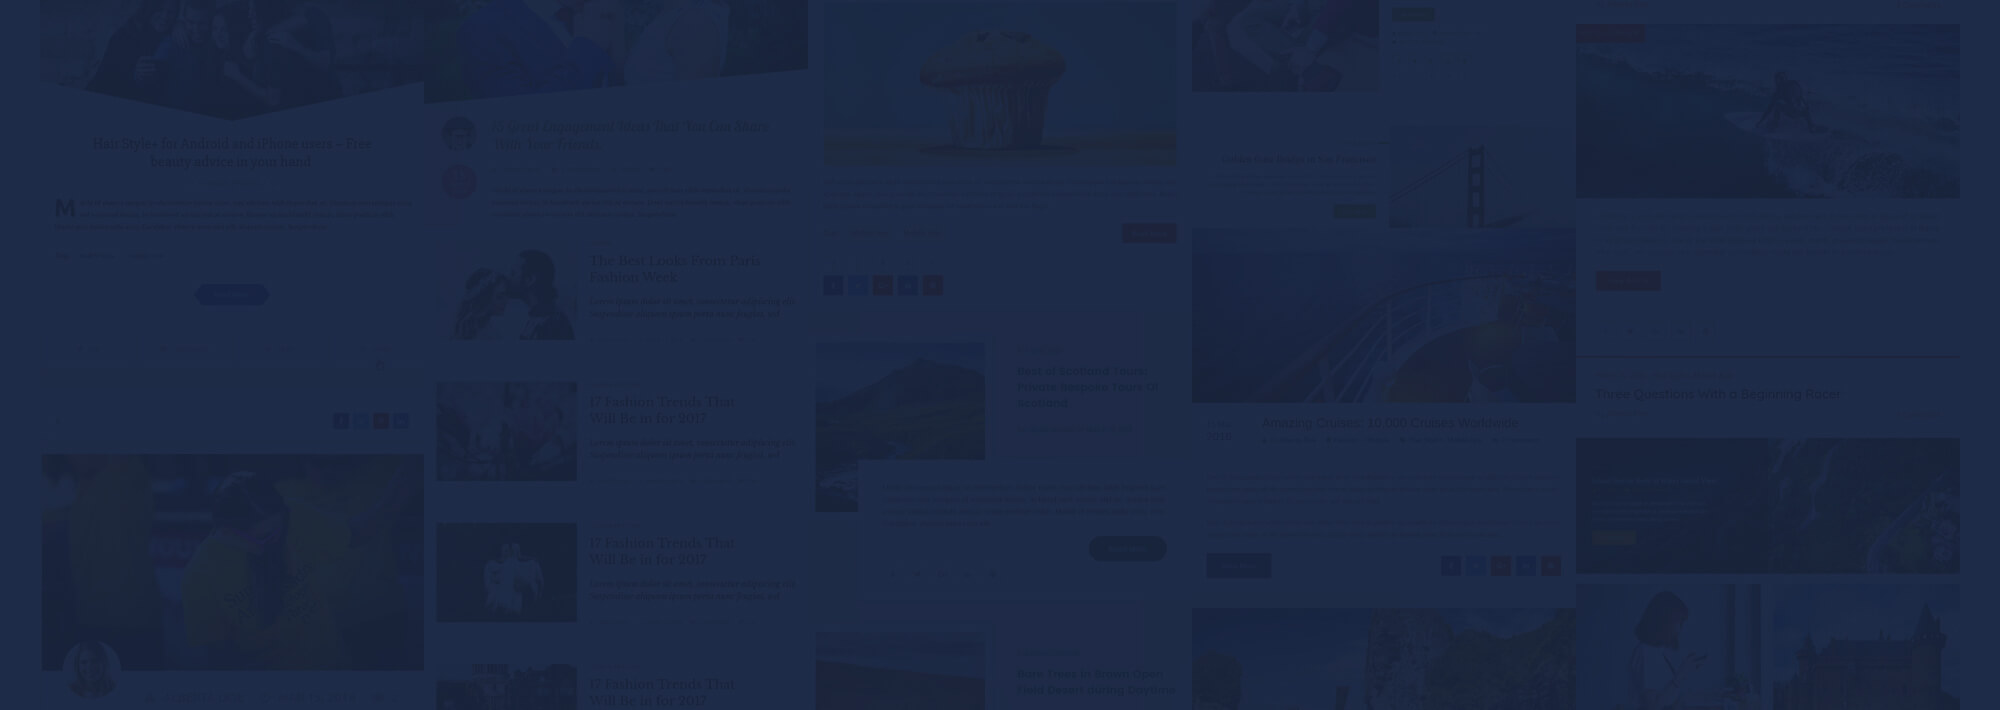 Blog designer template showcase